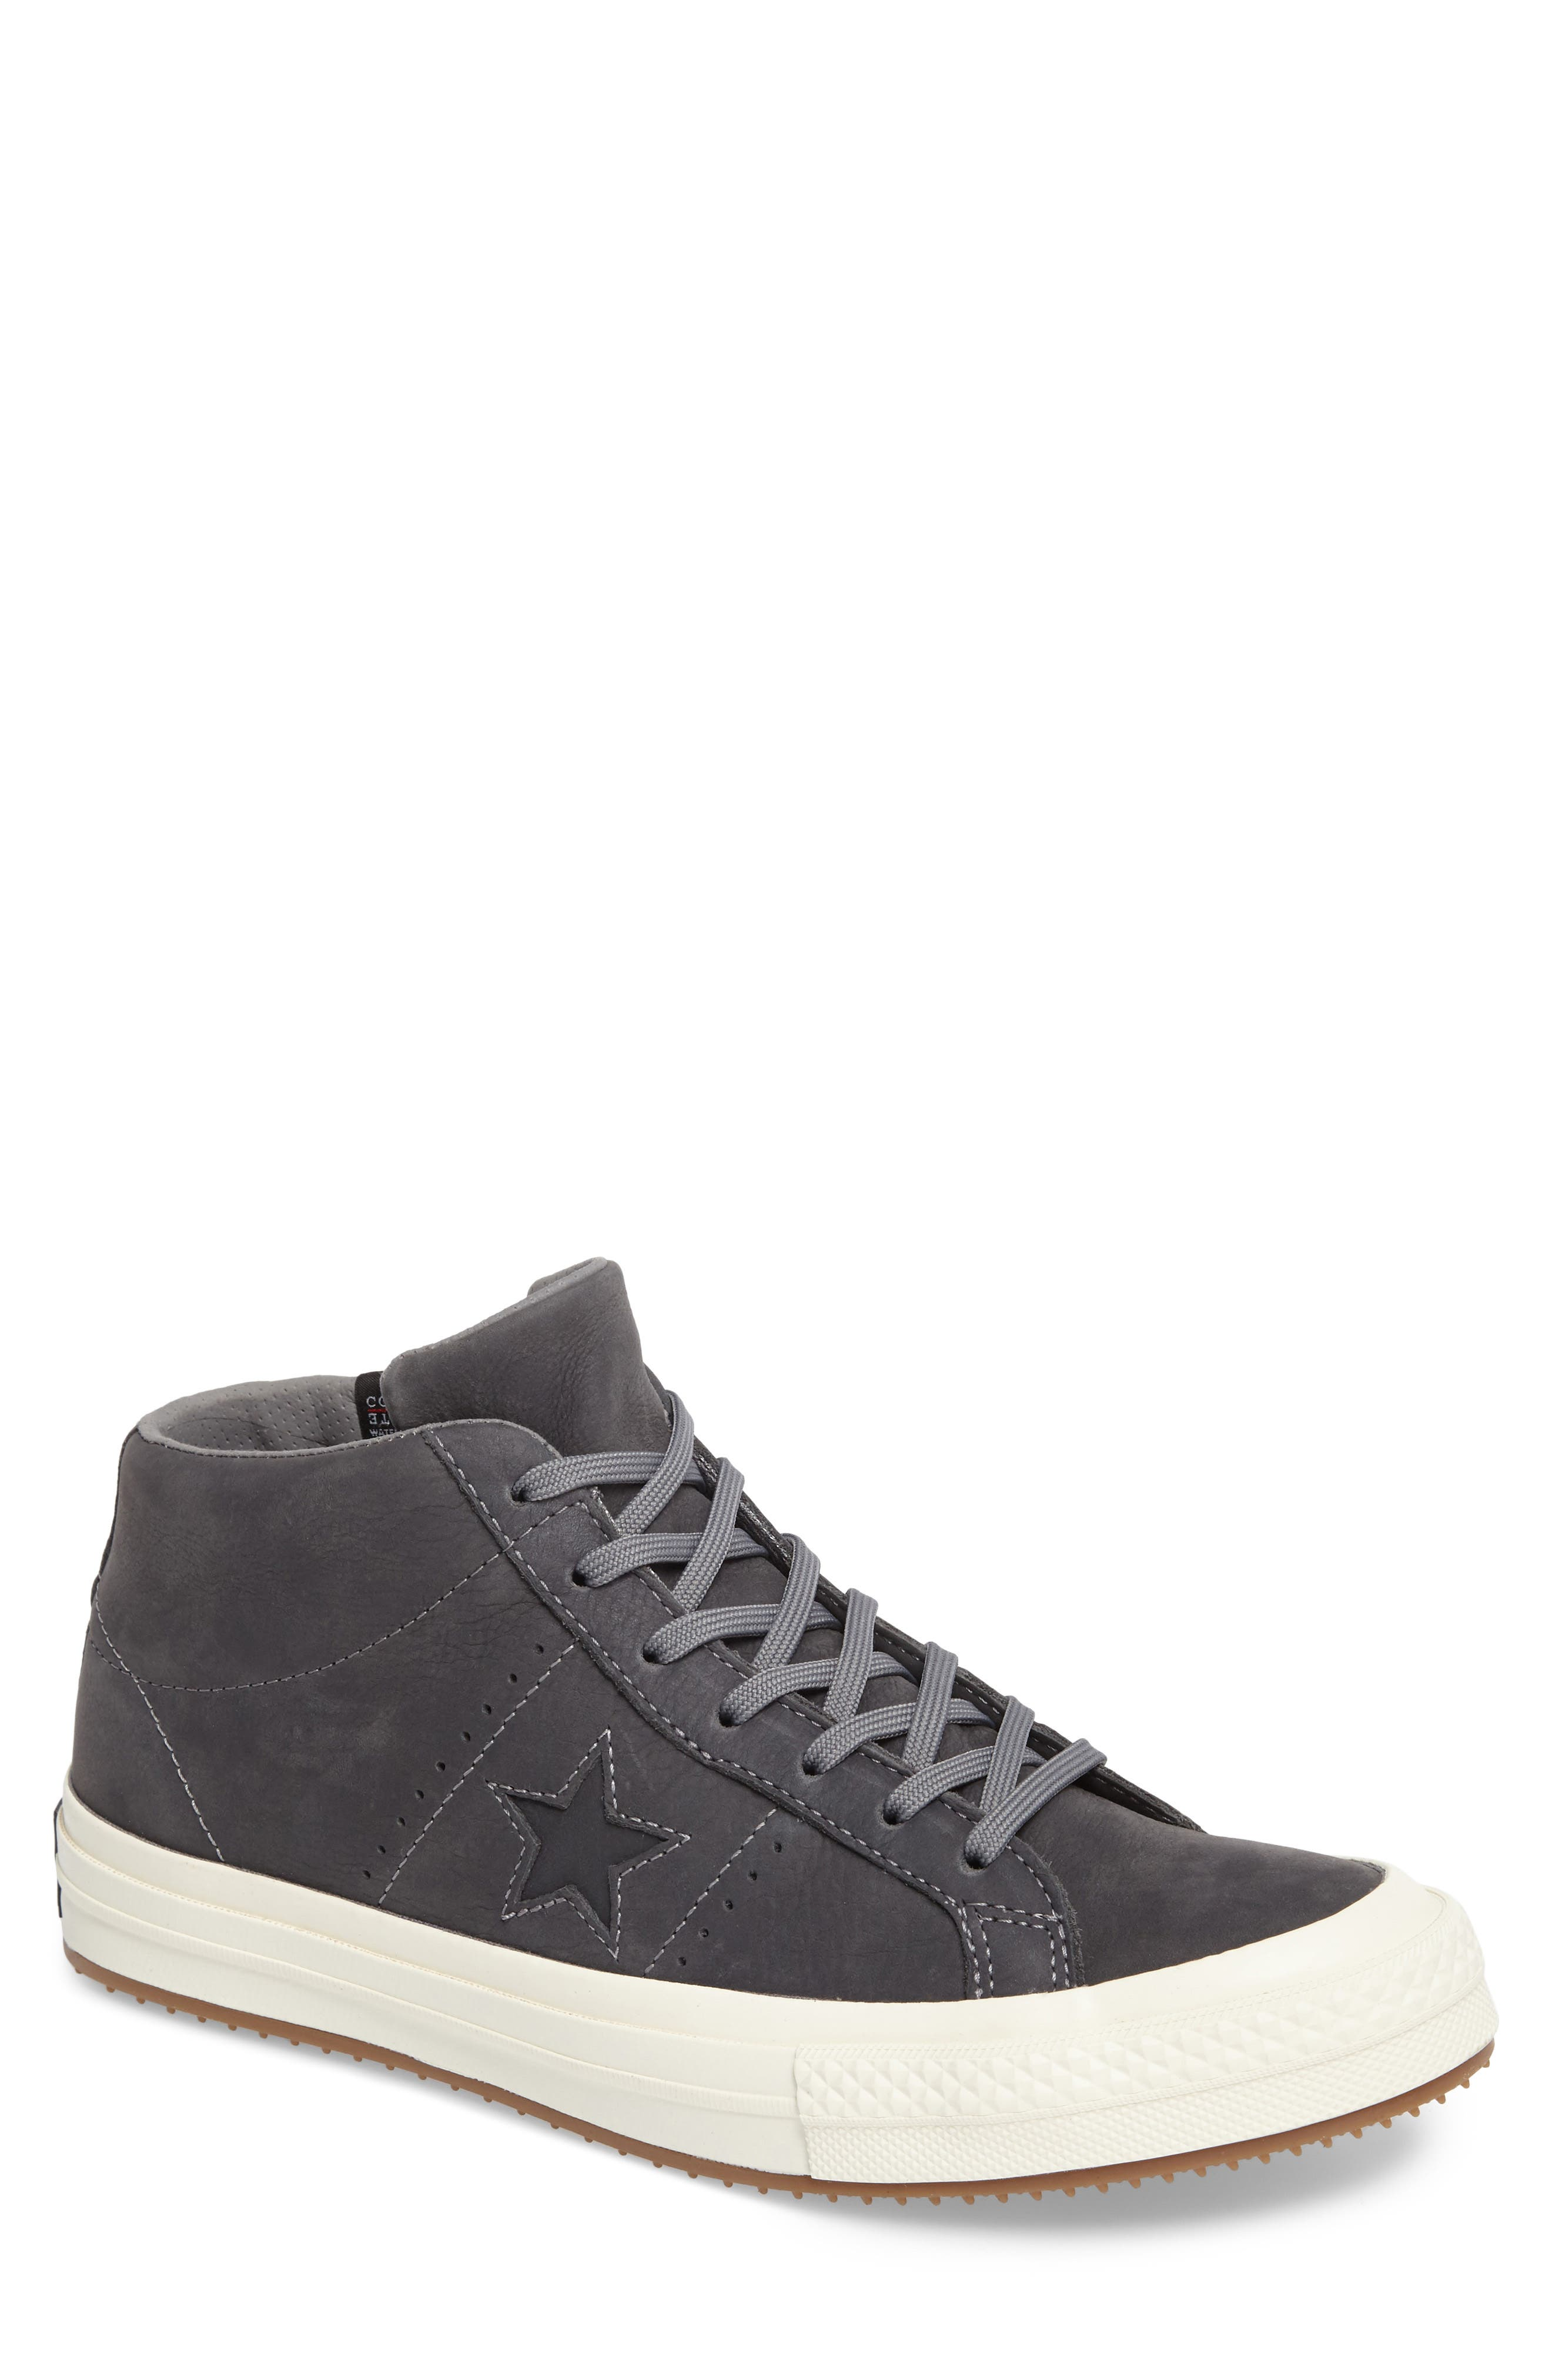 One Star Mid Sneaker,                             Main thumbnail 2, color,